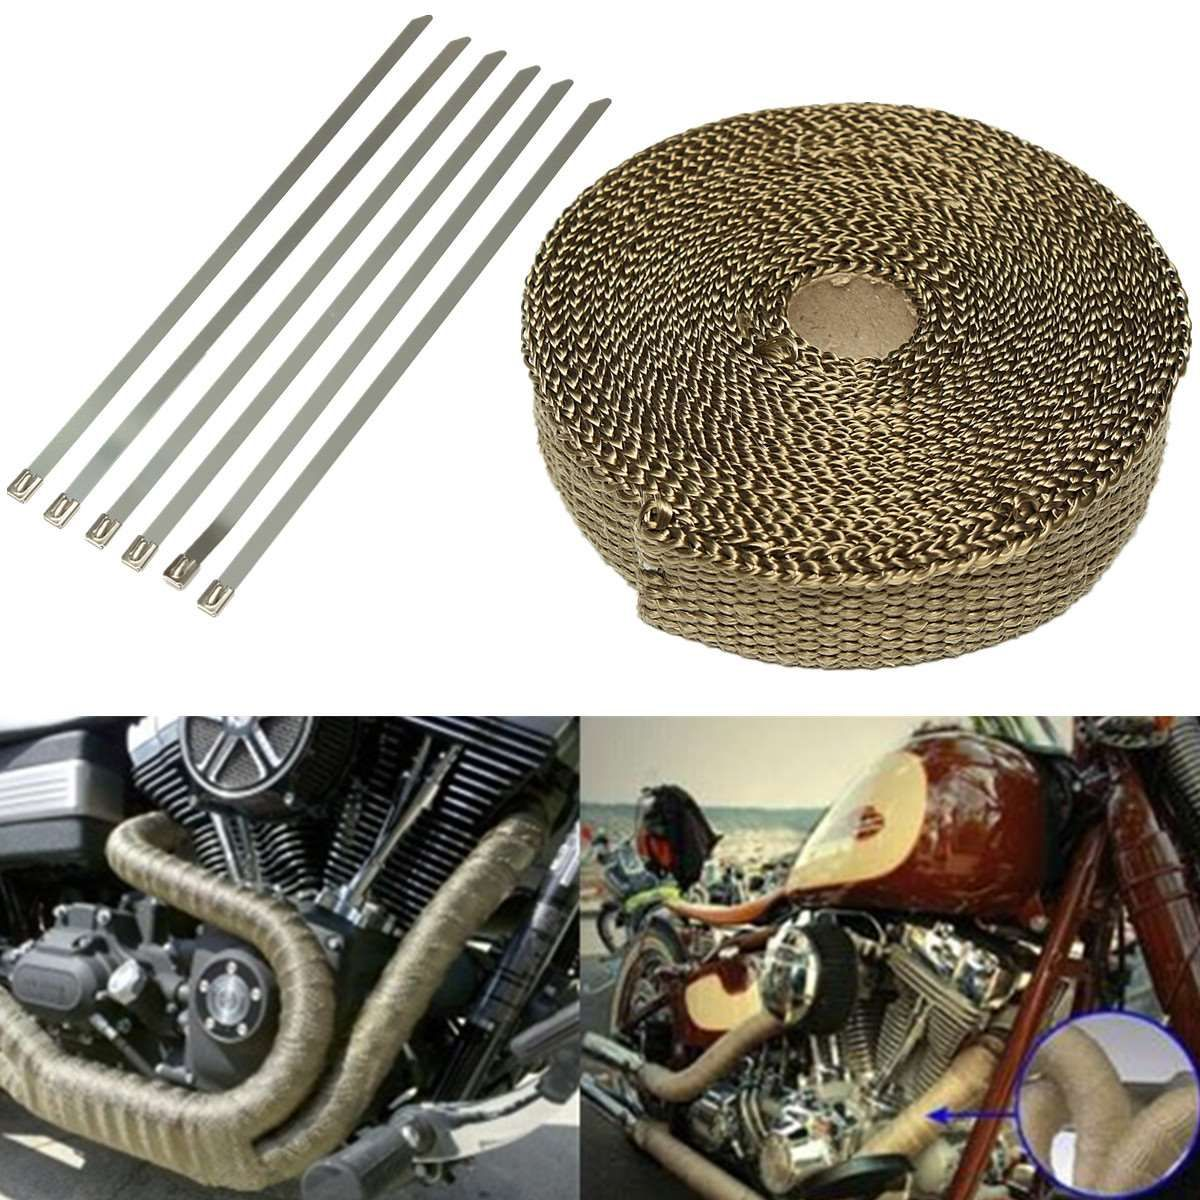 Motorcycle Car Basalt Fiber Insulation Clothes Exhaust Heat Wrap Turbo Pipe Heat Insulated Wrap With 6 Stainless Ties